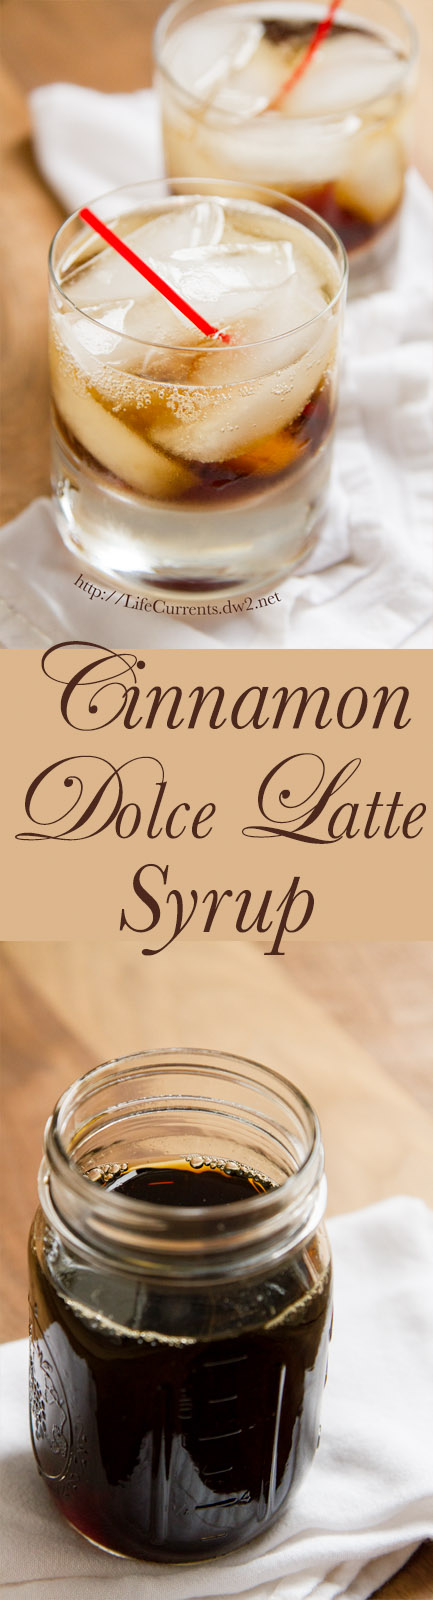 Cinnamon Dolce Latte Syrup